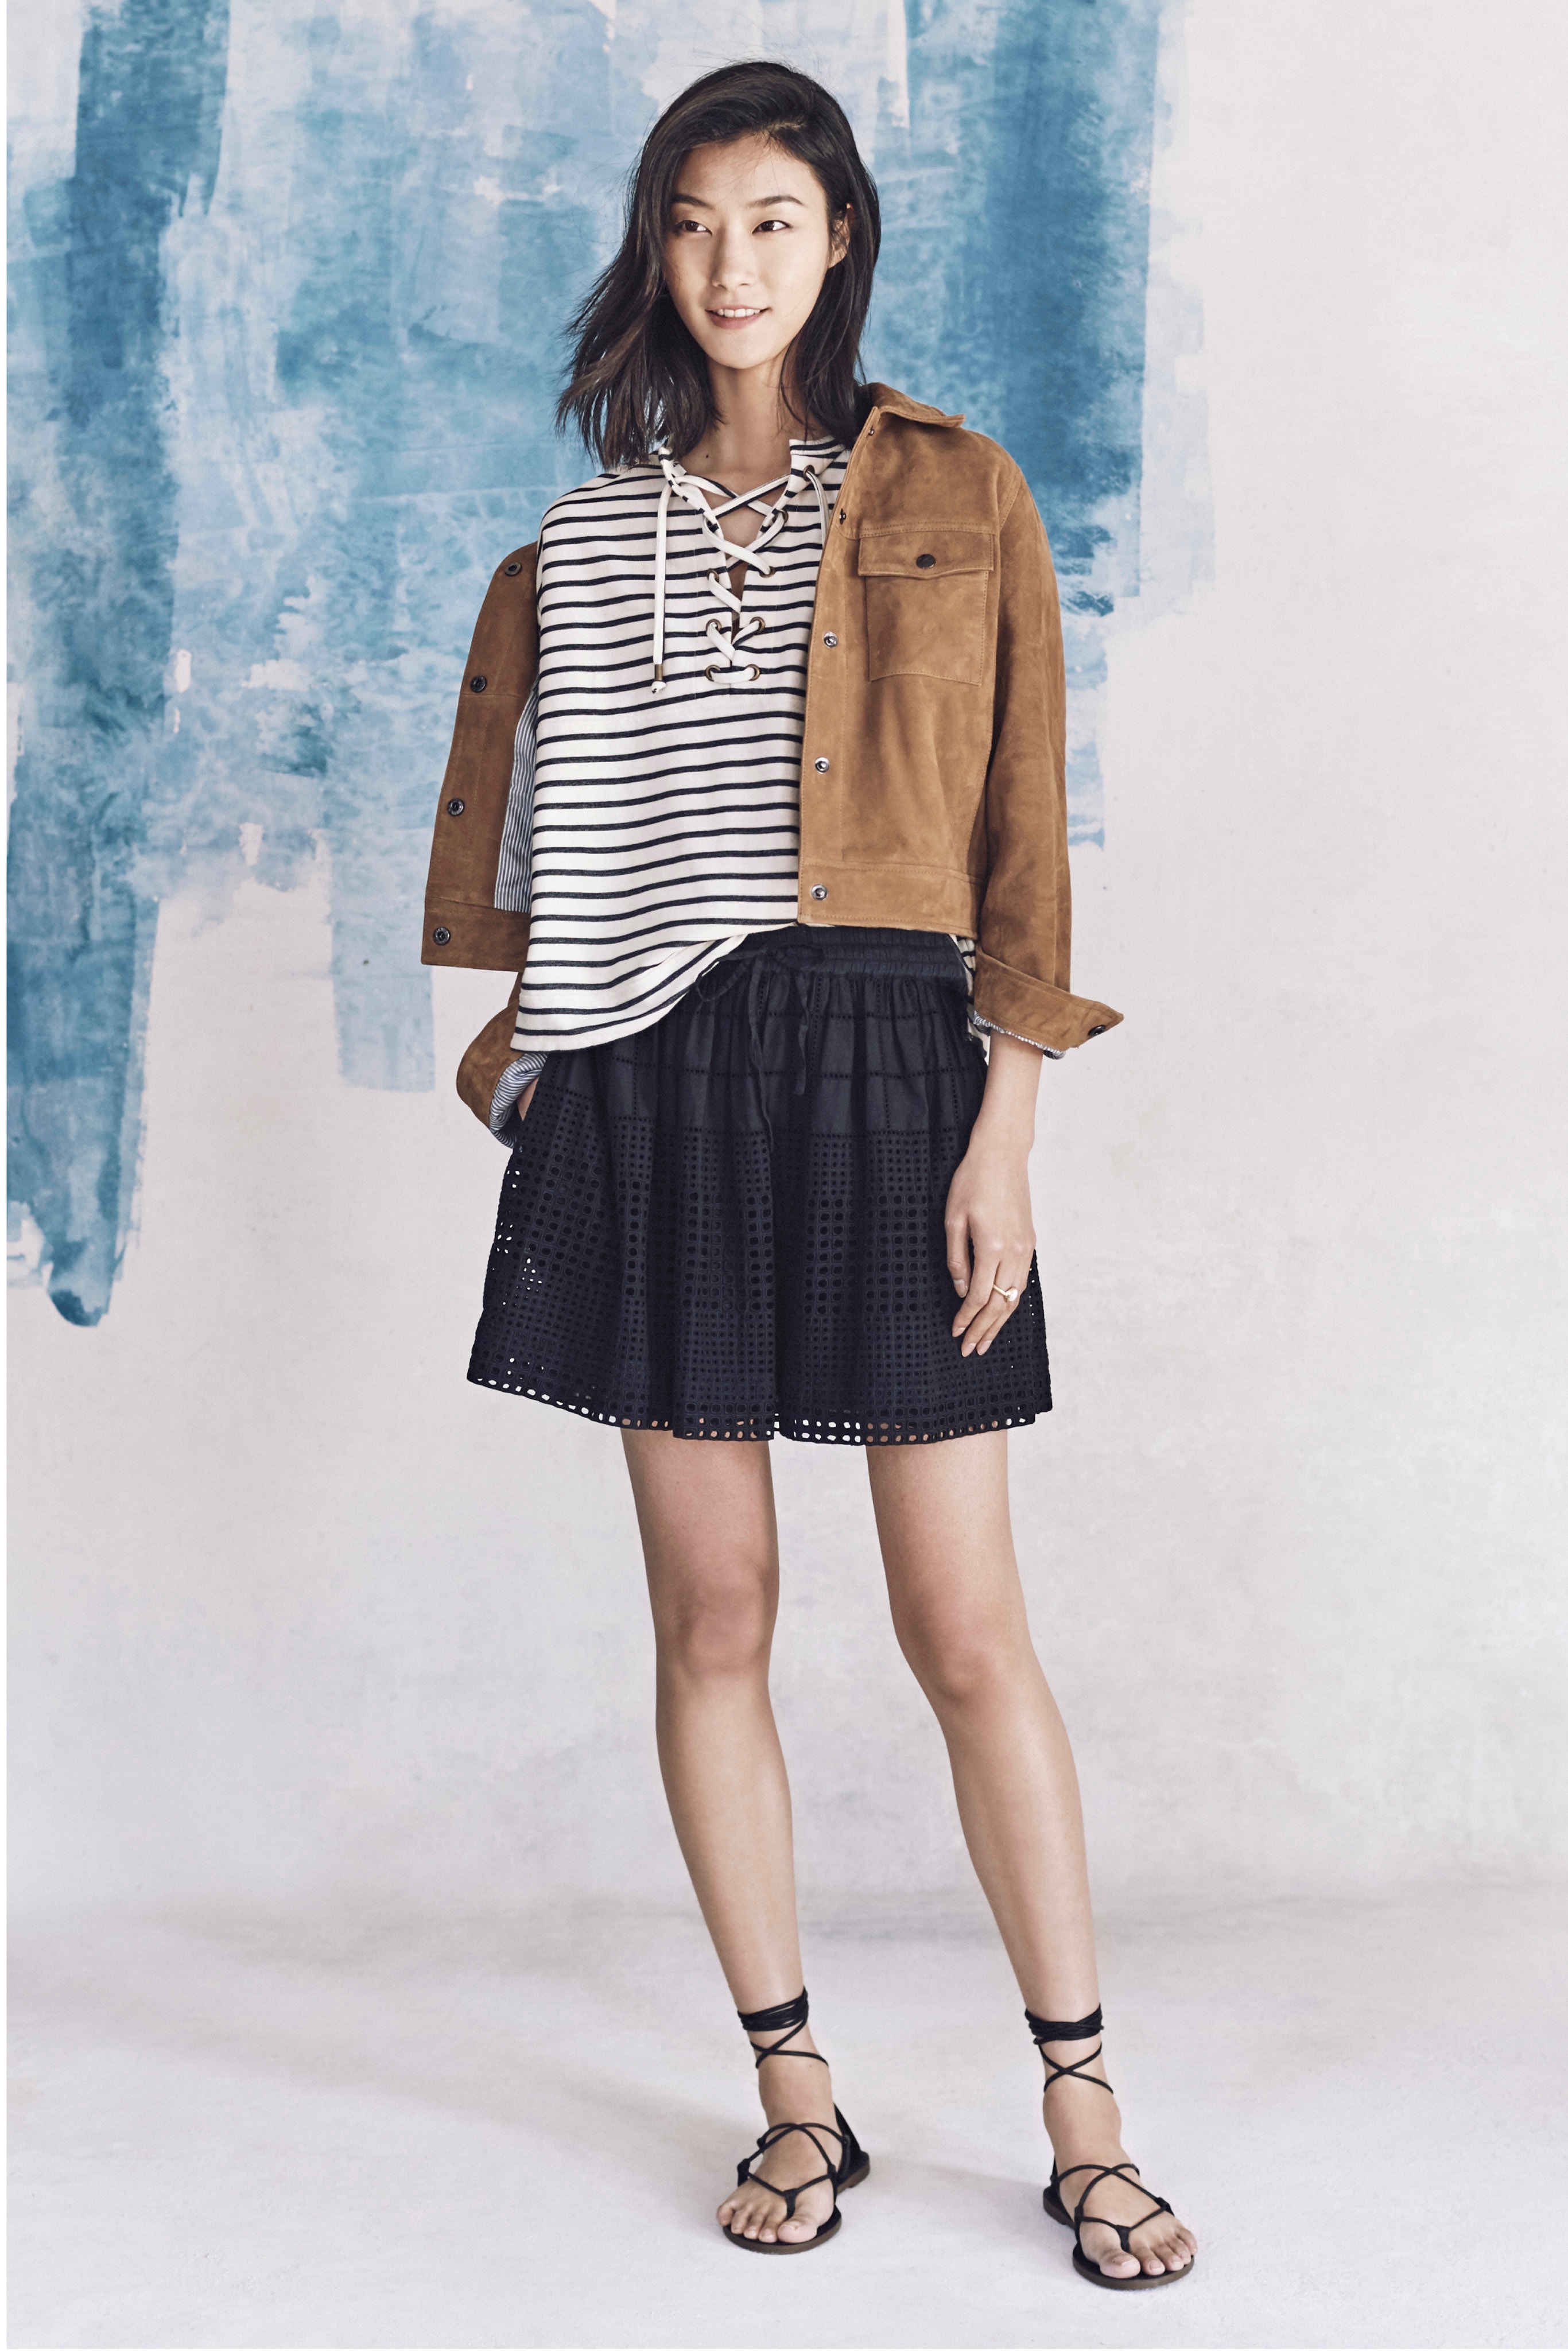 Madewell just released their spring 2016 collection, and trust me, you are going to be clamoring for every single piece. It's just so wearable. - Madewell Spring 2016 Lookbook - Black and White Stripes and Skirt